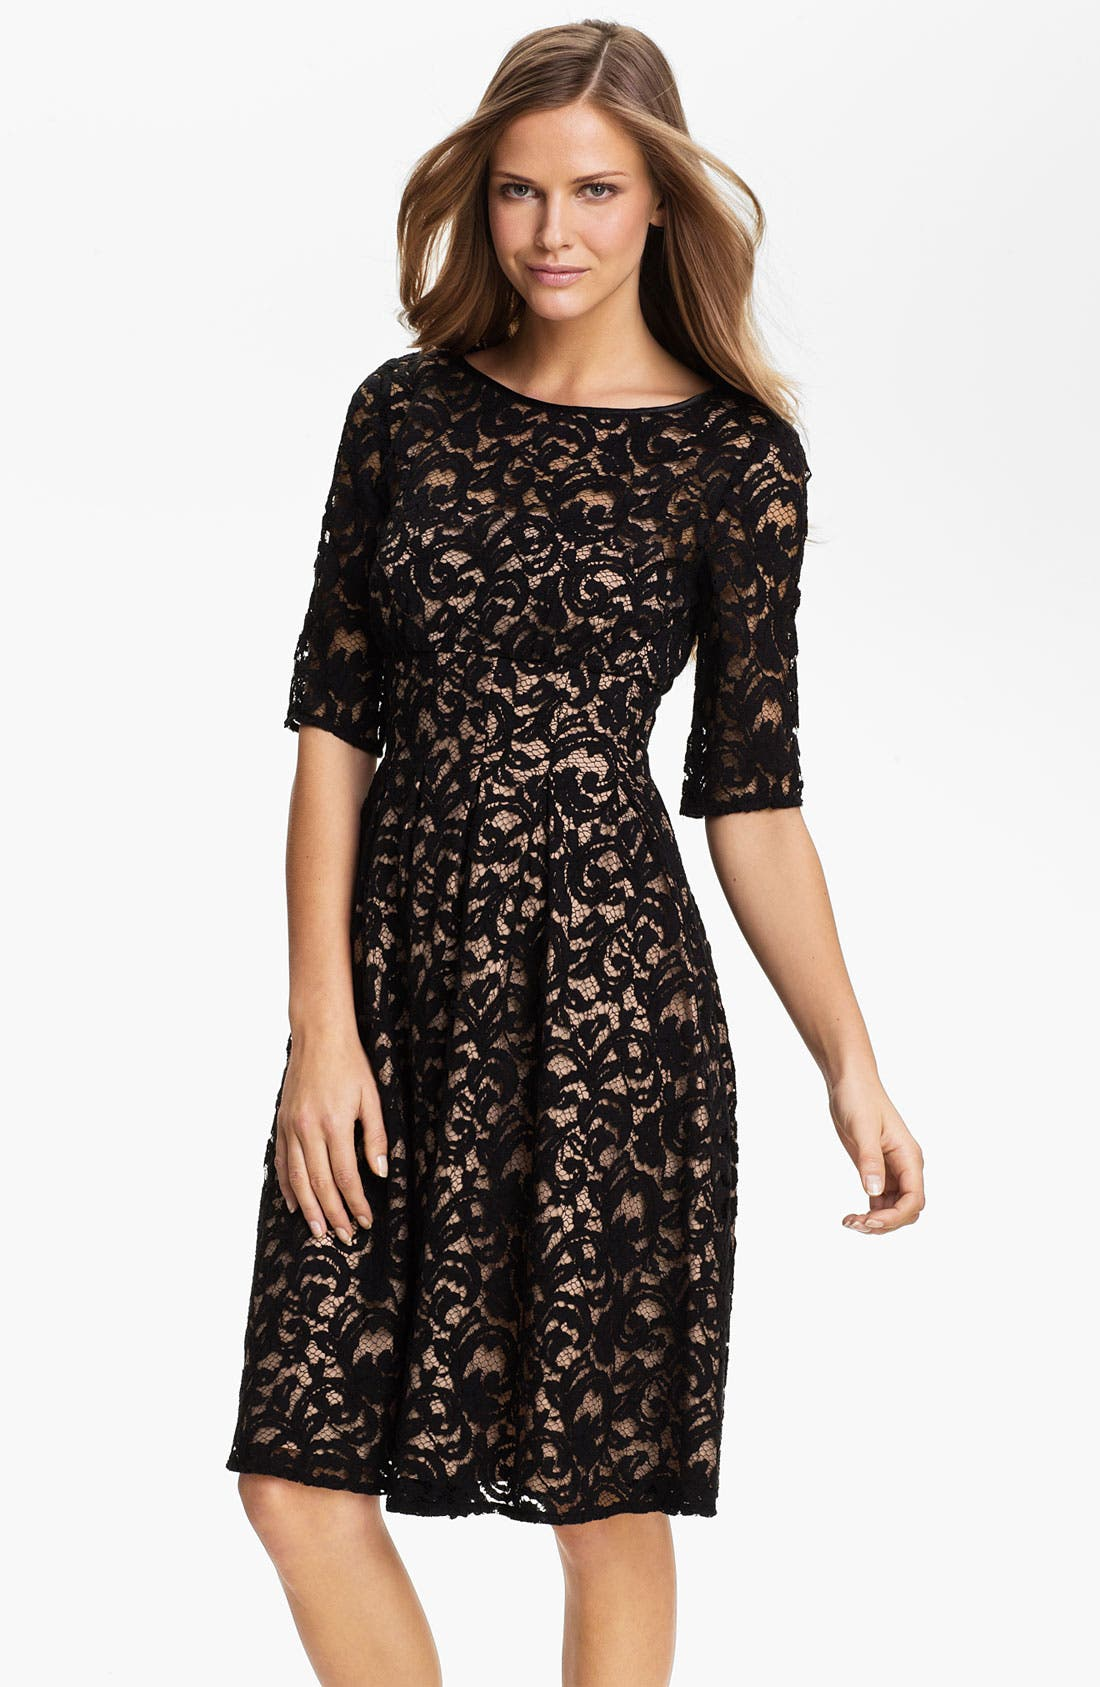 Main Image - Adrianna Papell Lace Overlay Fit & Flare Dress (Regular & Petite)